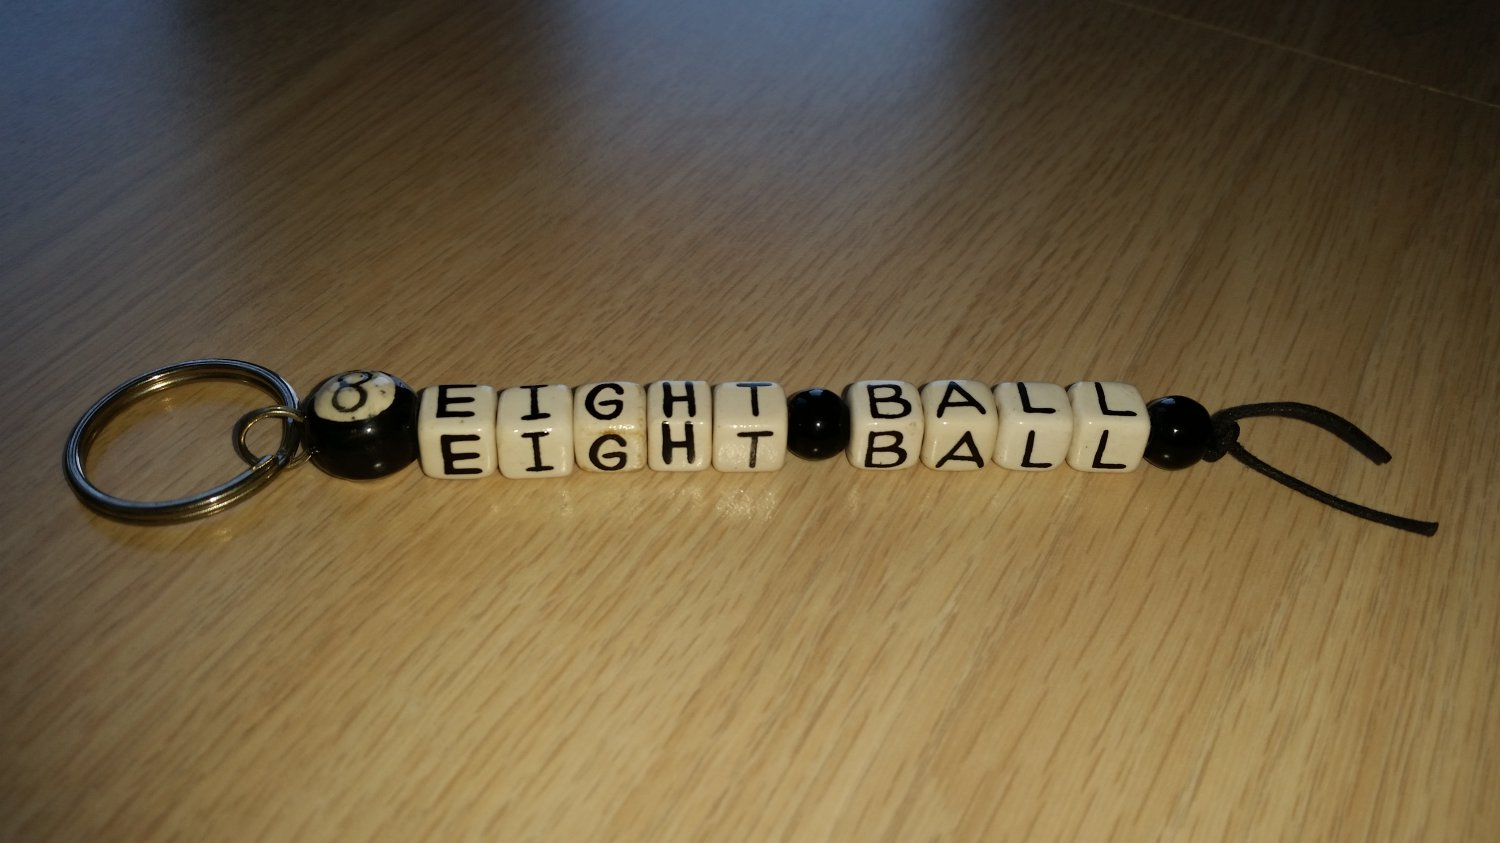 """Pool Fan Alphabet Bead Keychain - """"EIGHT BALL"""" Complete with an """"8 Ball""""!"""